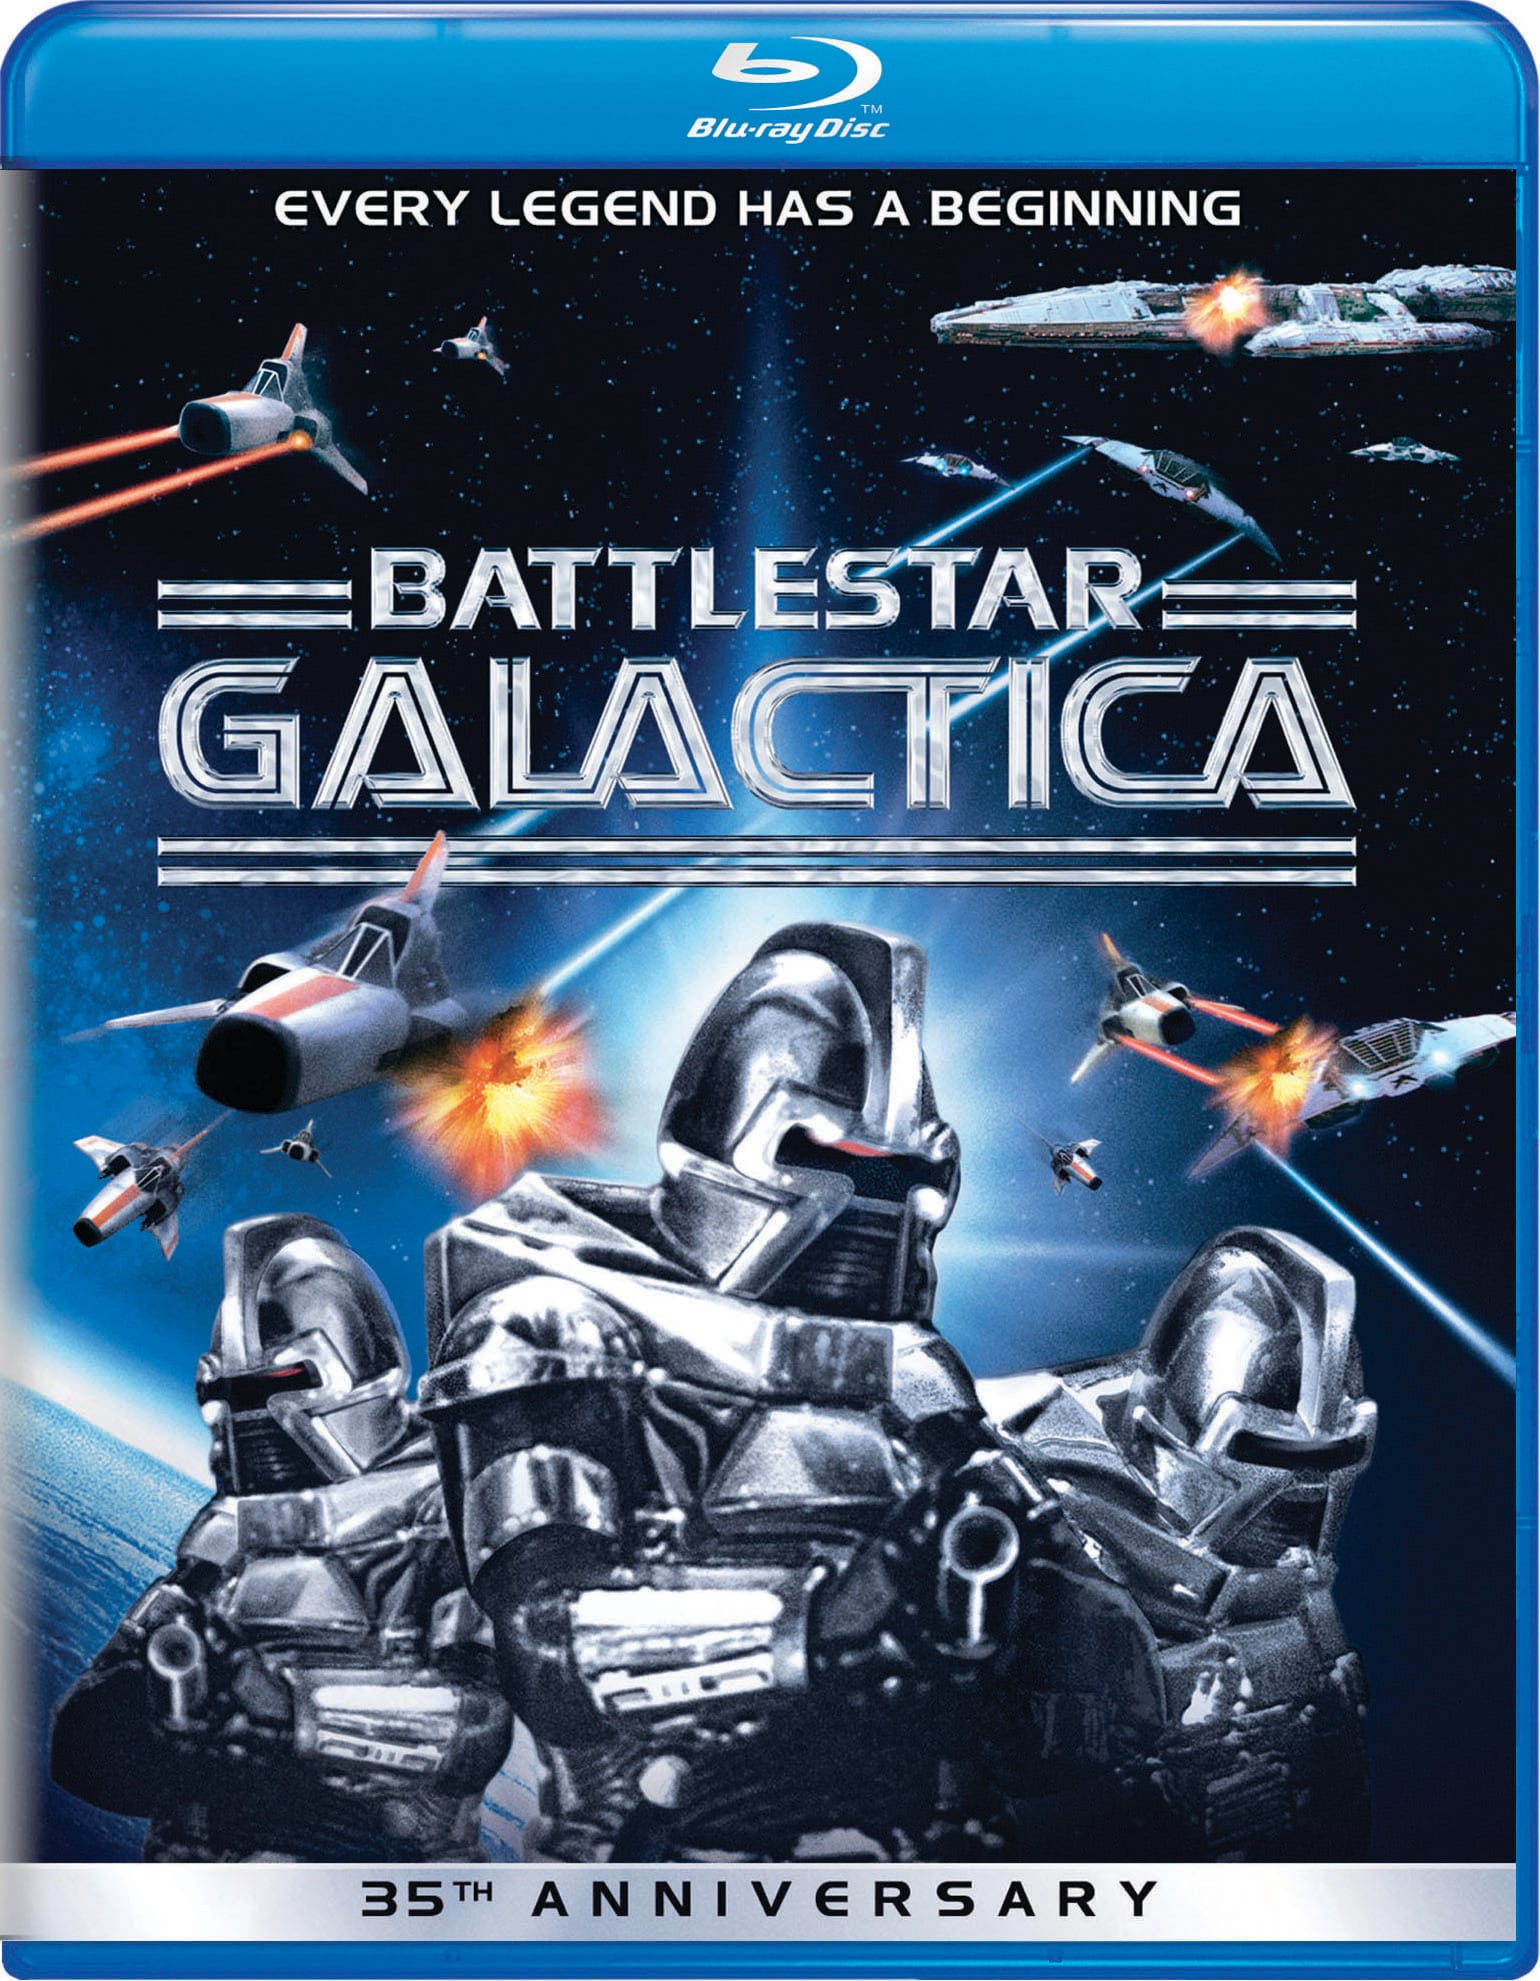 Battlestar Galactica (35th Anniversary Edition) [Blu-ray]